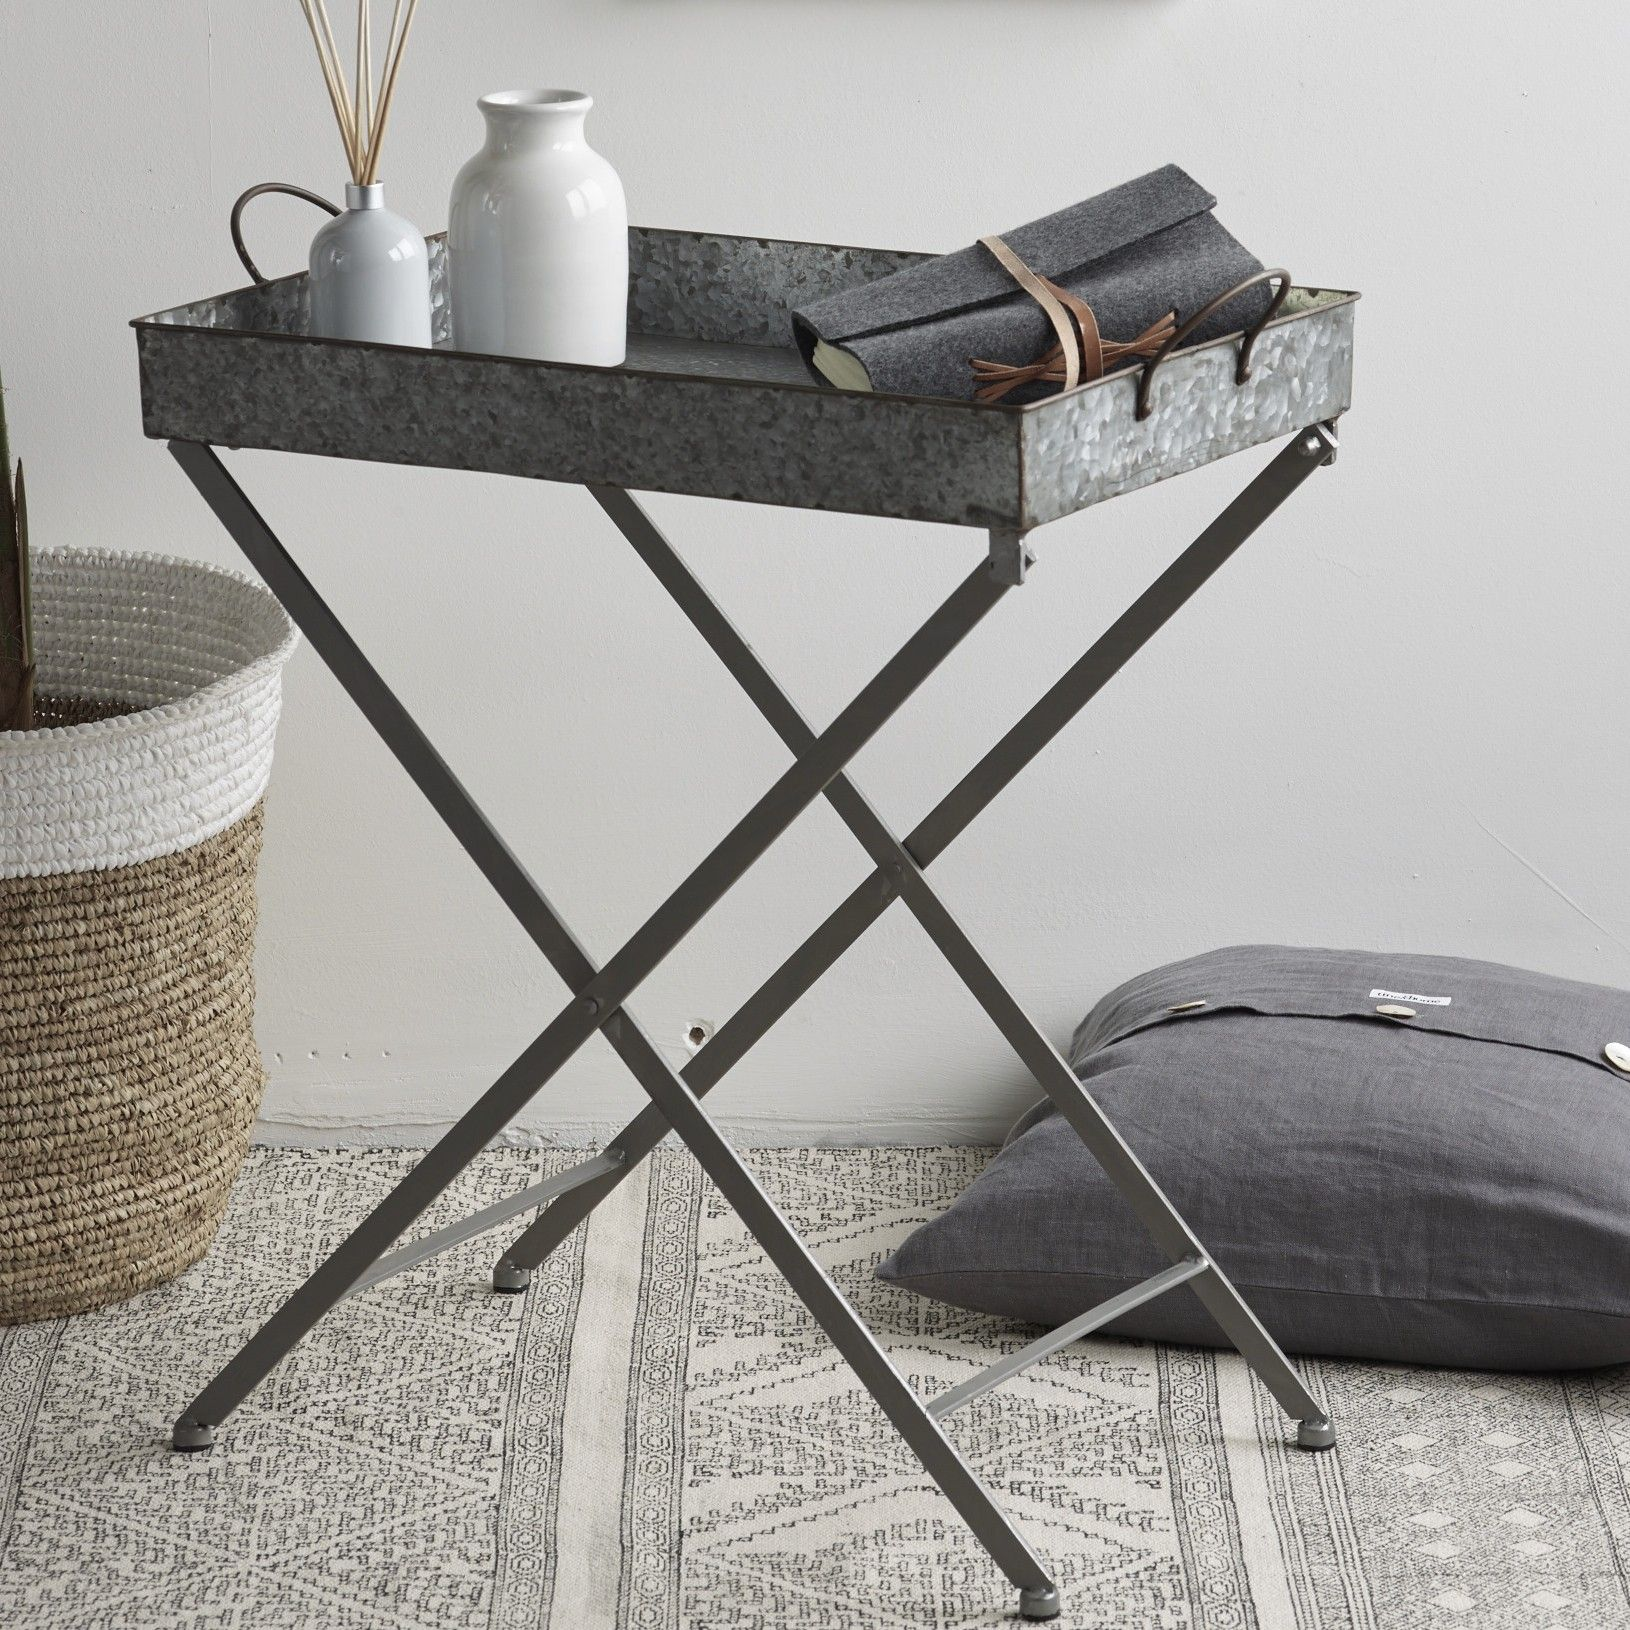 Zinc Finish Furniture Design Vintage Zinc Tray Table Industrial Outdoor Table For